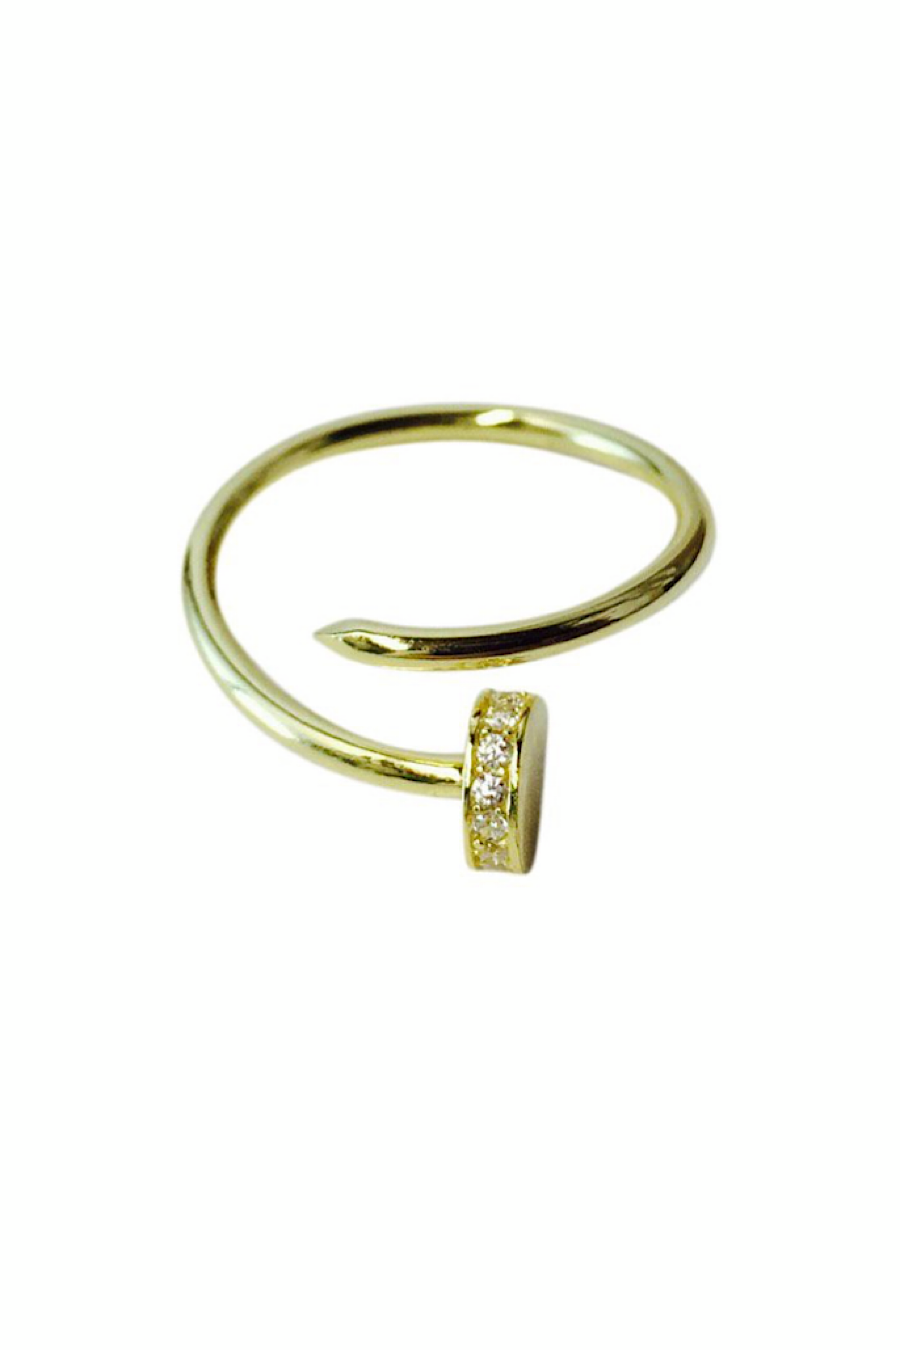 Curved Nail Ring in Gold or Silver